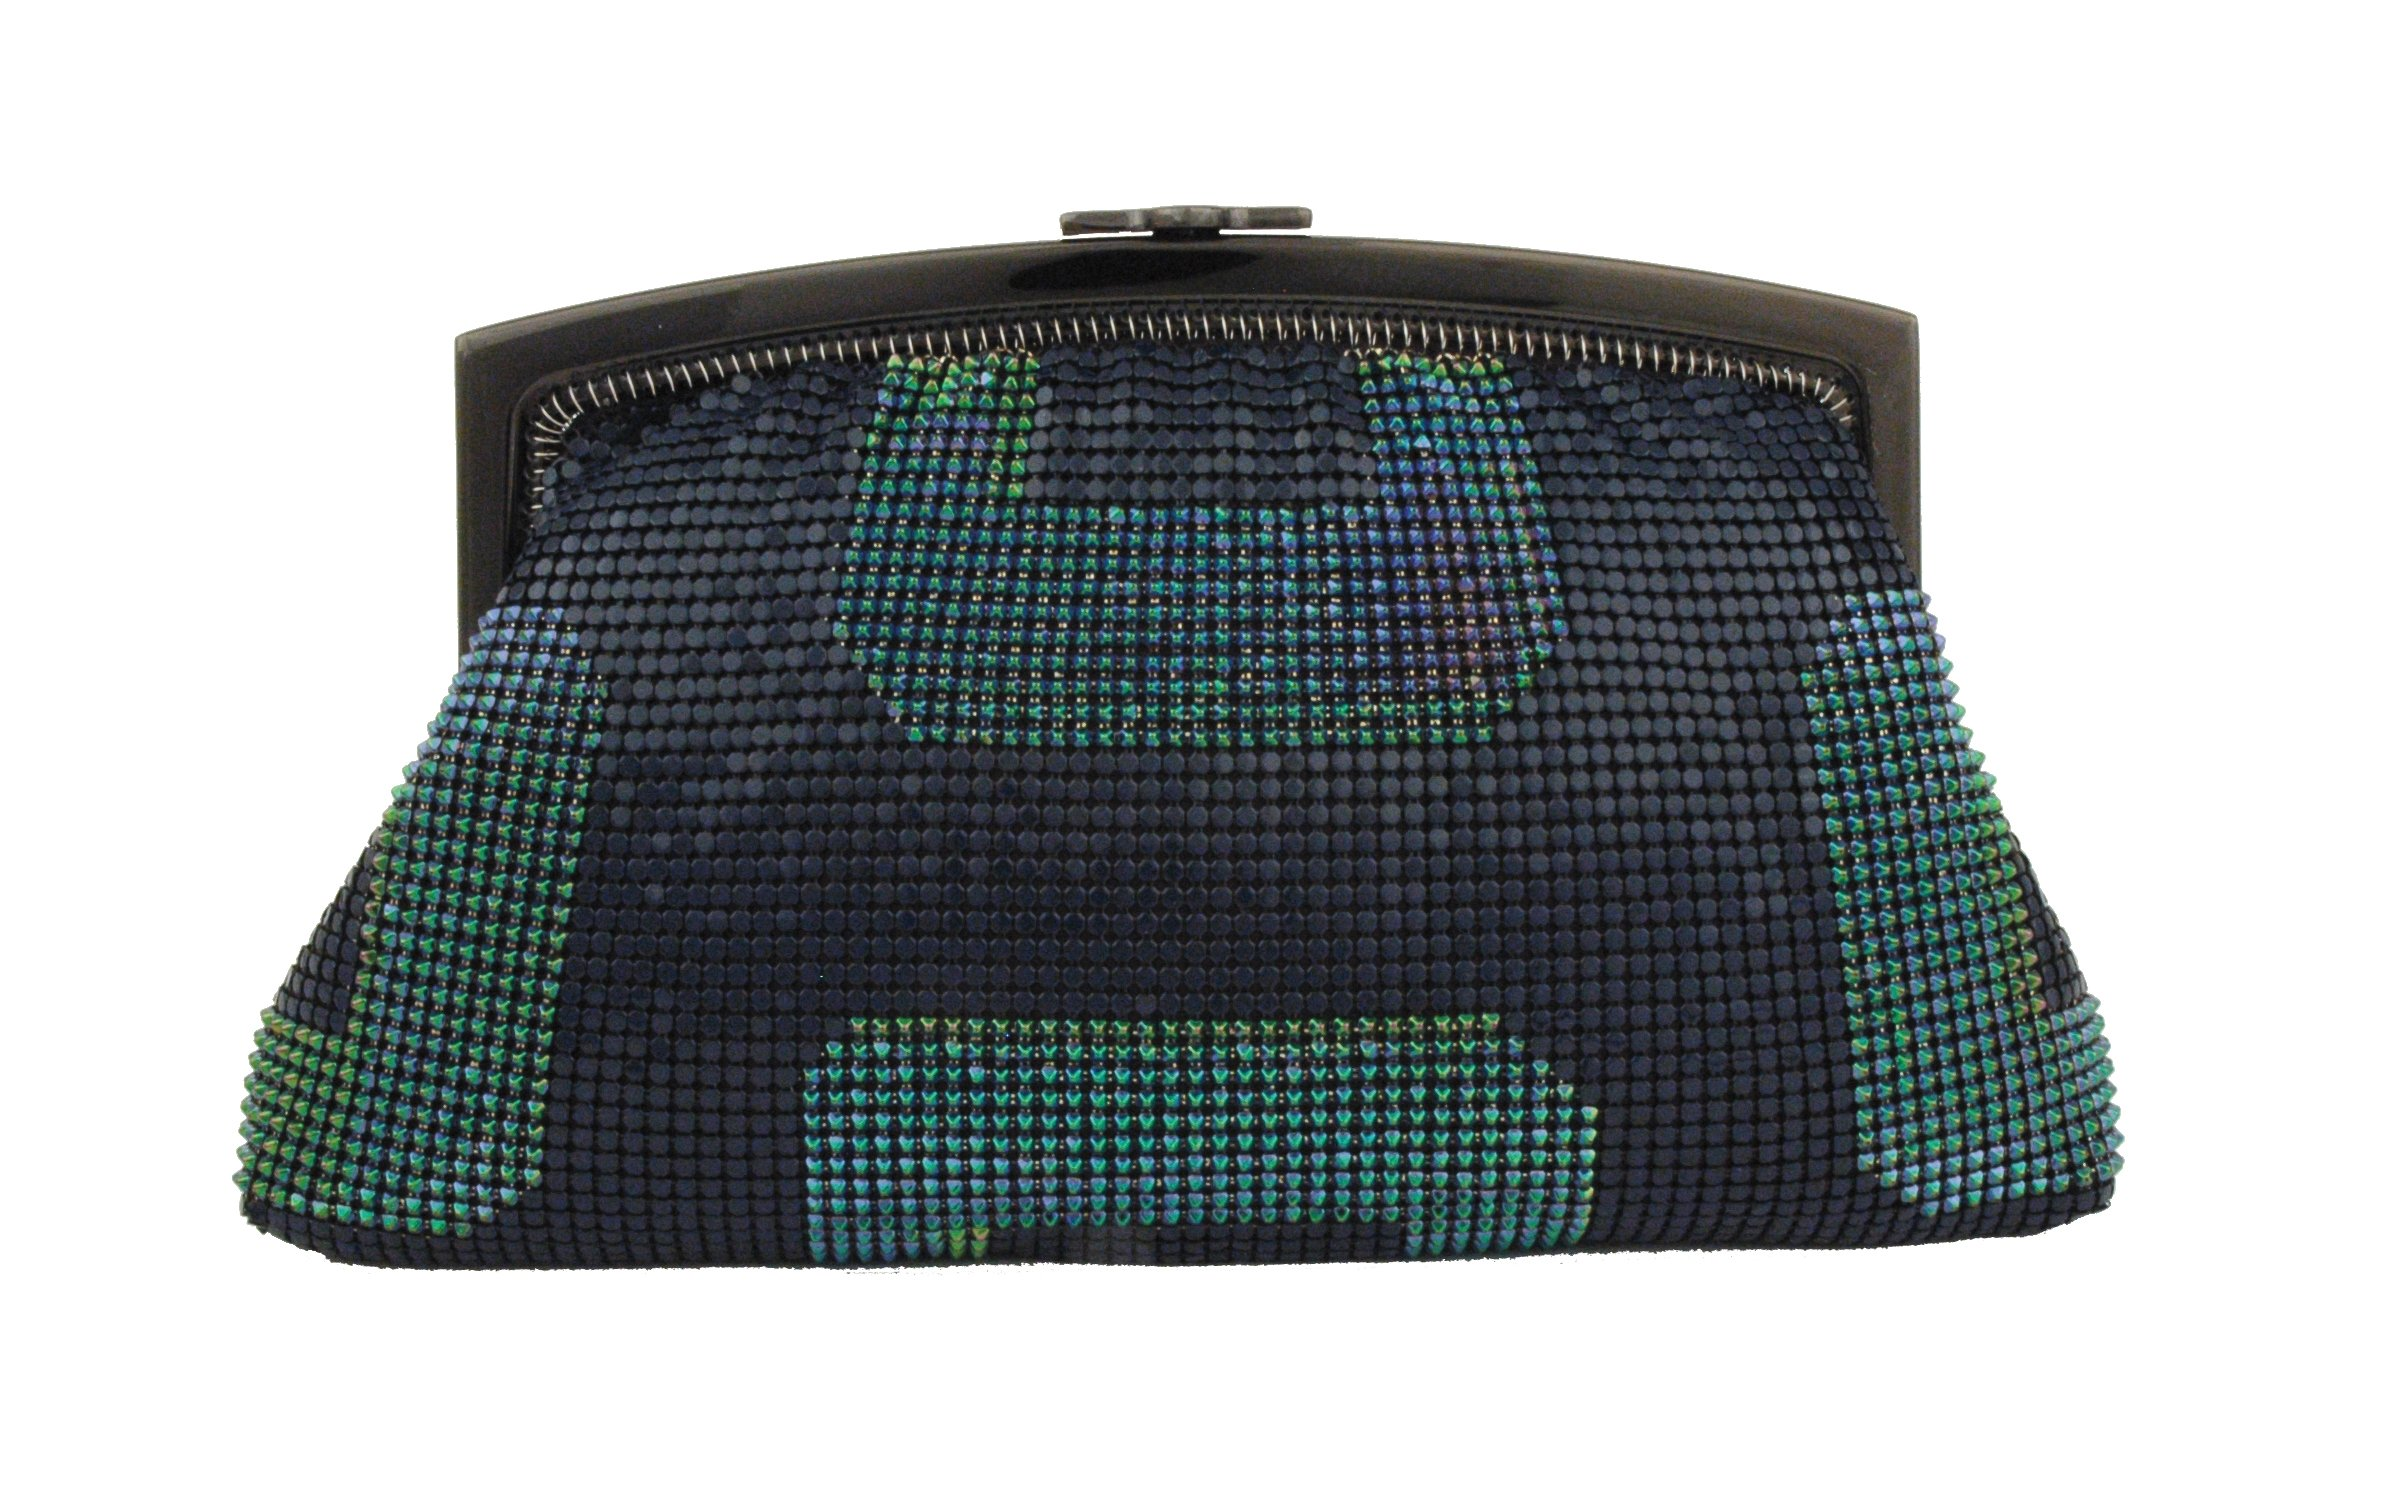 Whiting & Davis Geo Framed 1-5841PE Clutch,Peacock,One Size